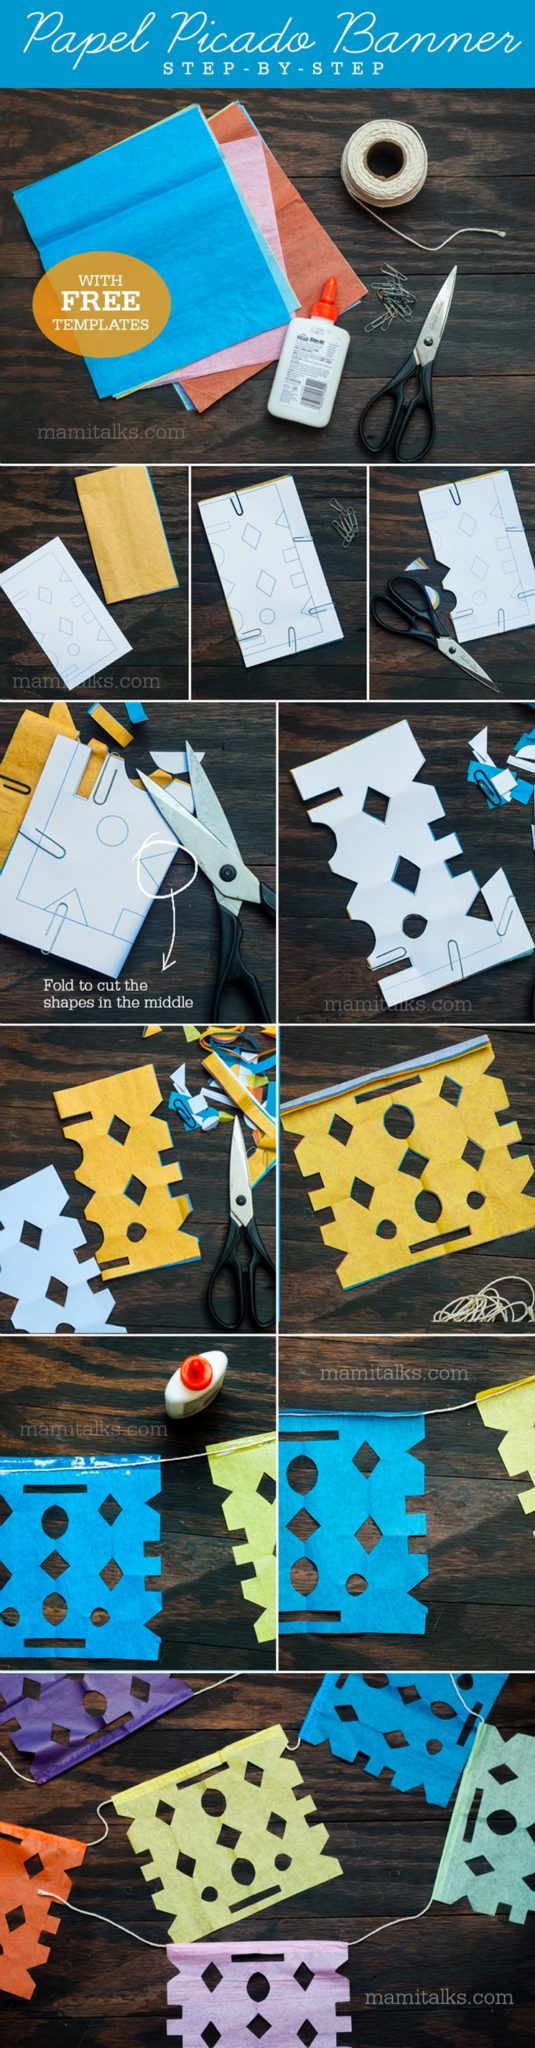 Papel picado templates, learn step-by-step instructions how to make your own banner for day of the dead. -Mamitalks.com